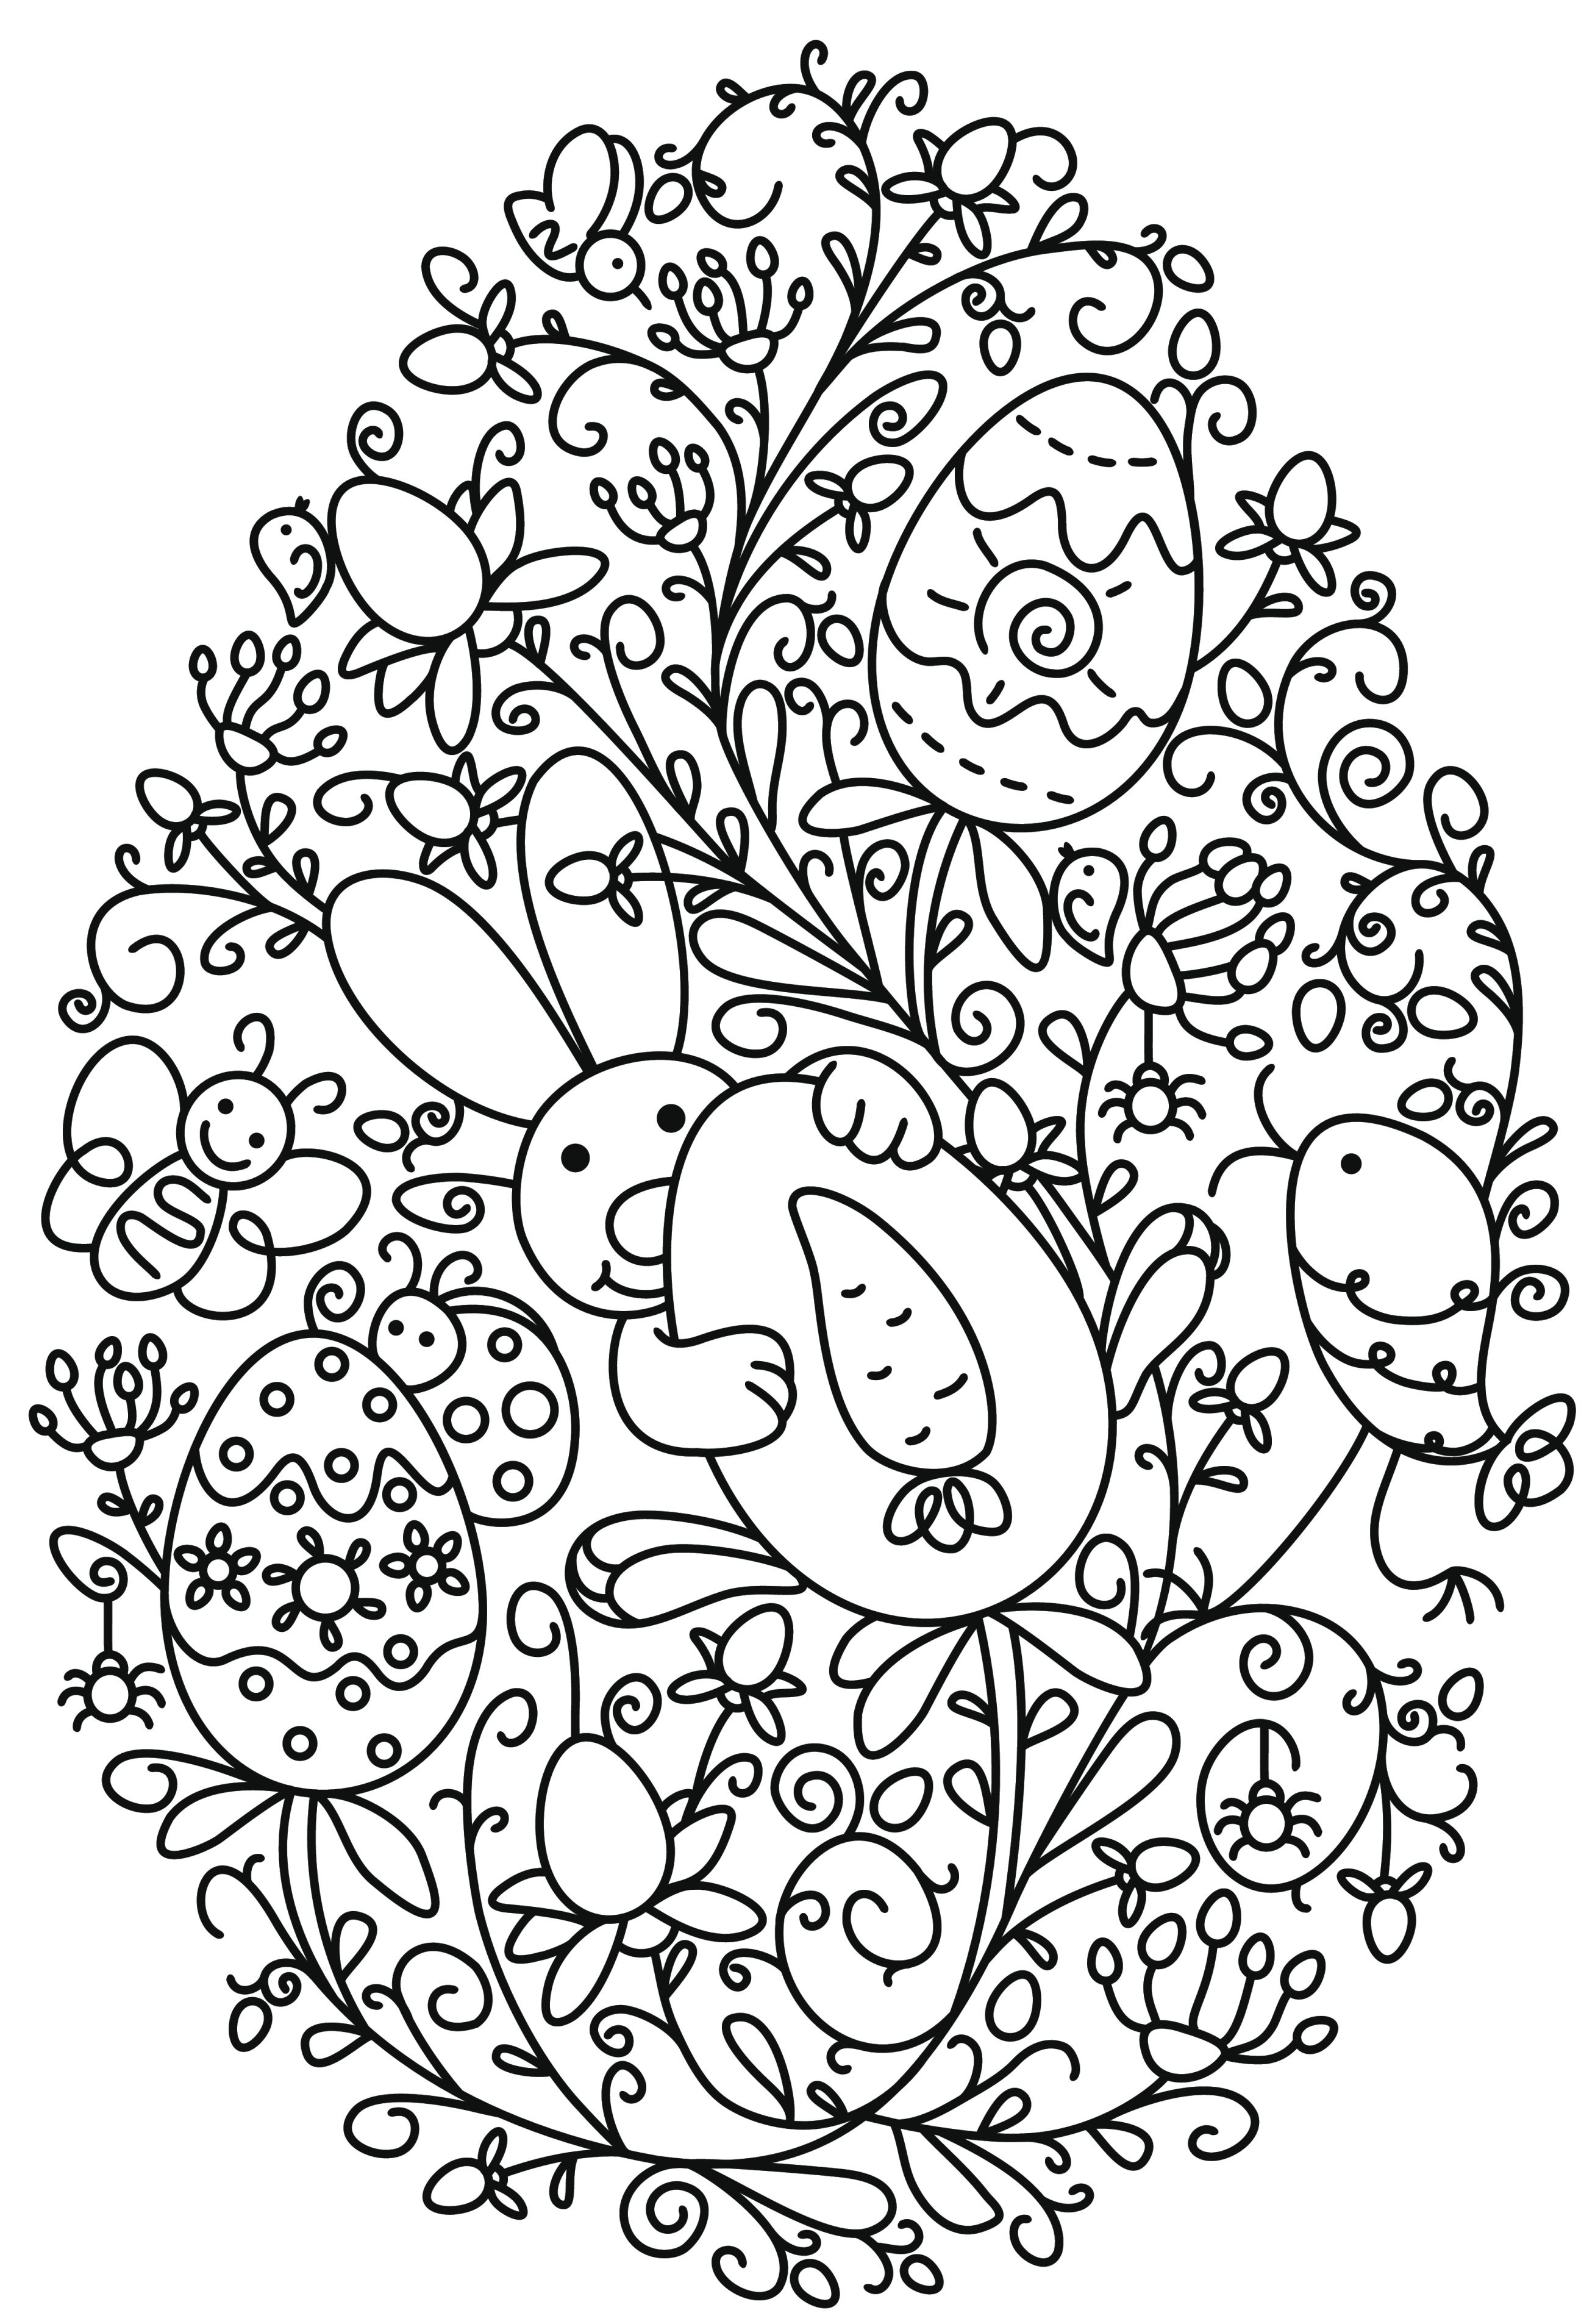 Spring and easter colouring pages - Imagen De Http Entrepadres Imujer Com Sites Entrepadres Easter Coloring